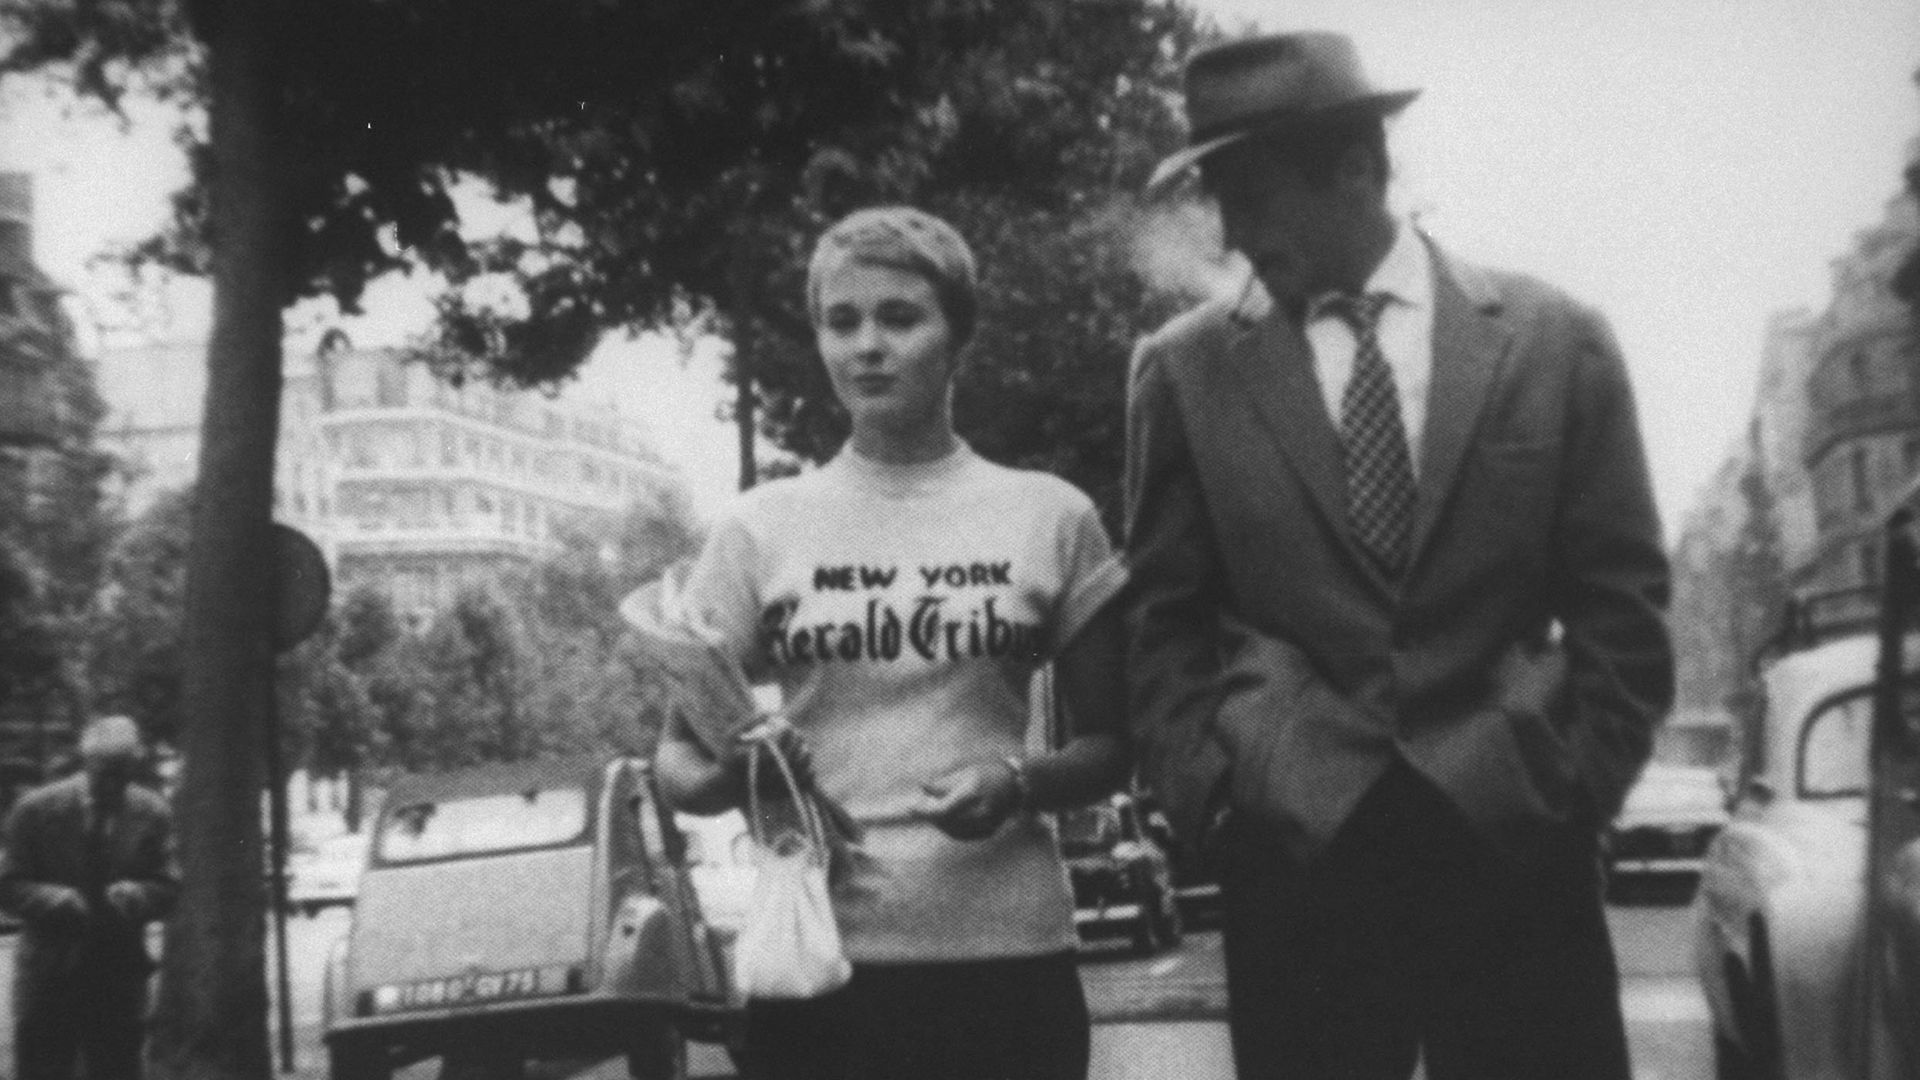 Jean Seberg (L) and Jean-Paul Belmondo in scene from Breathless. - Credit: The LIFE Picture Collection via